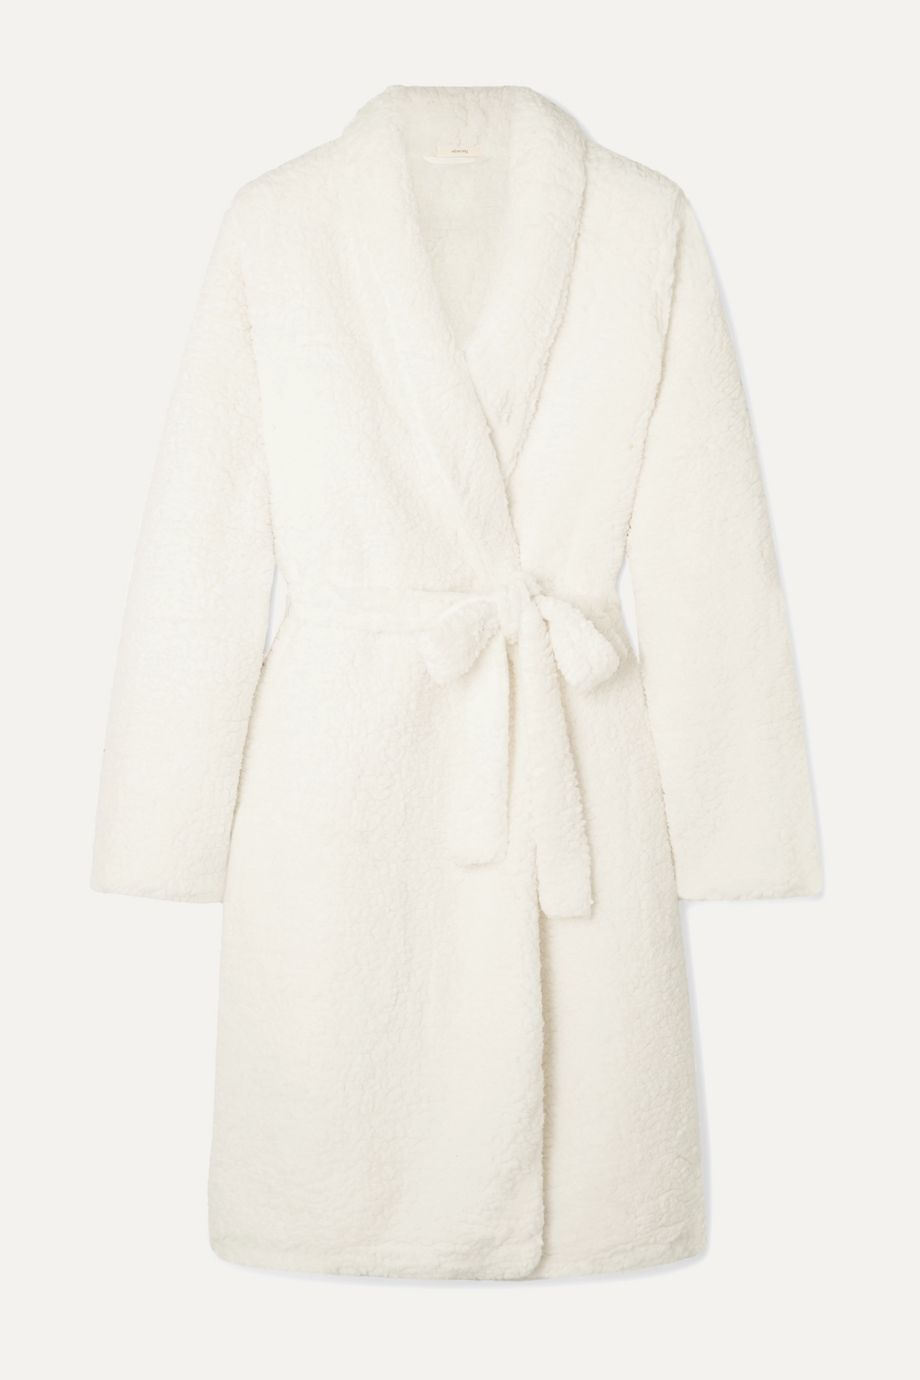 Eberjey The Sherpa fleece robe